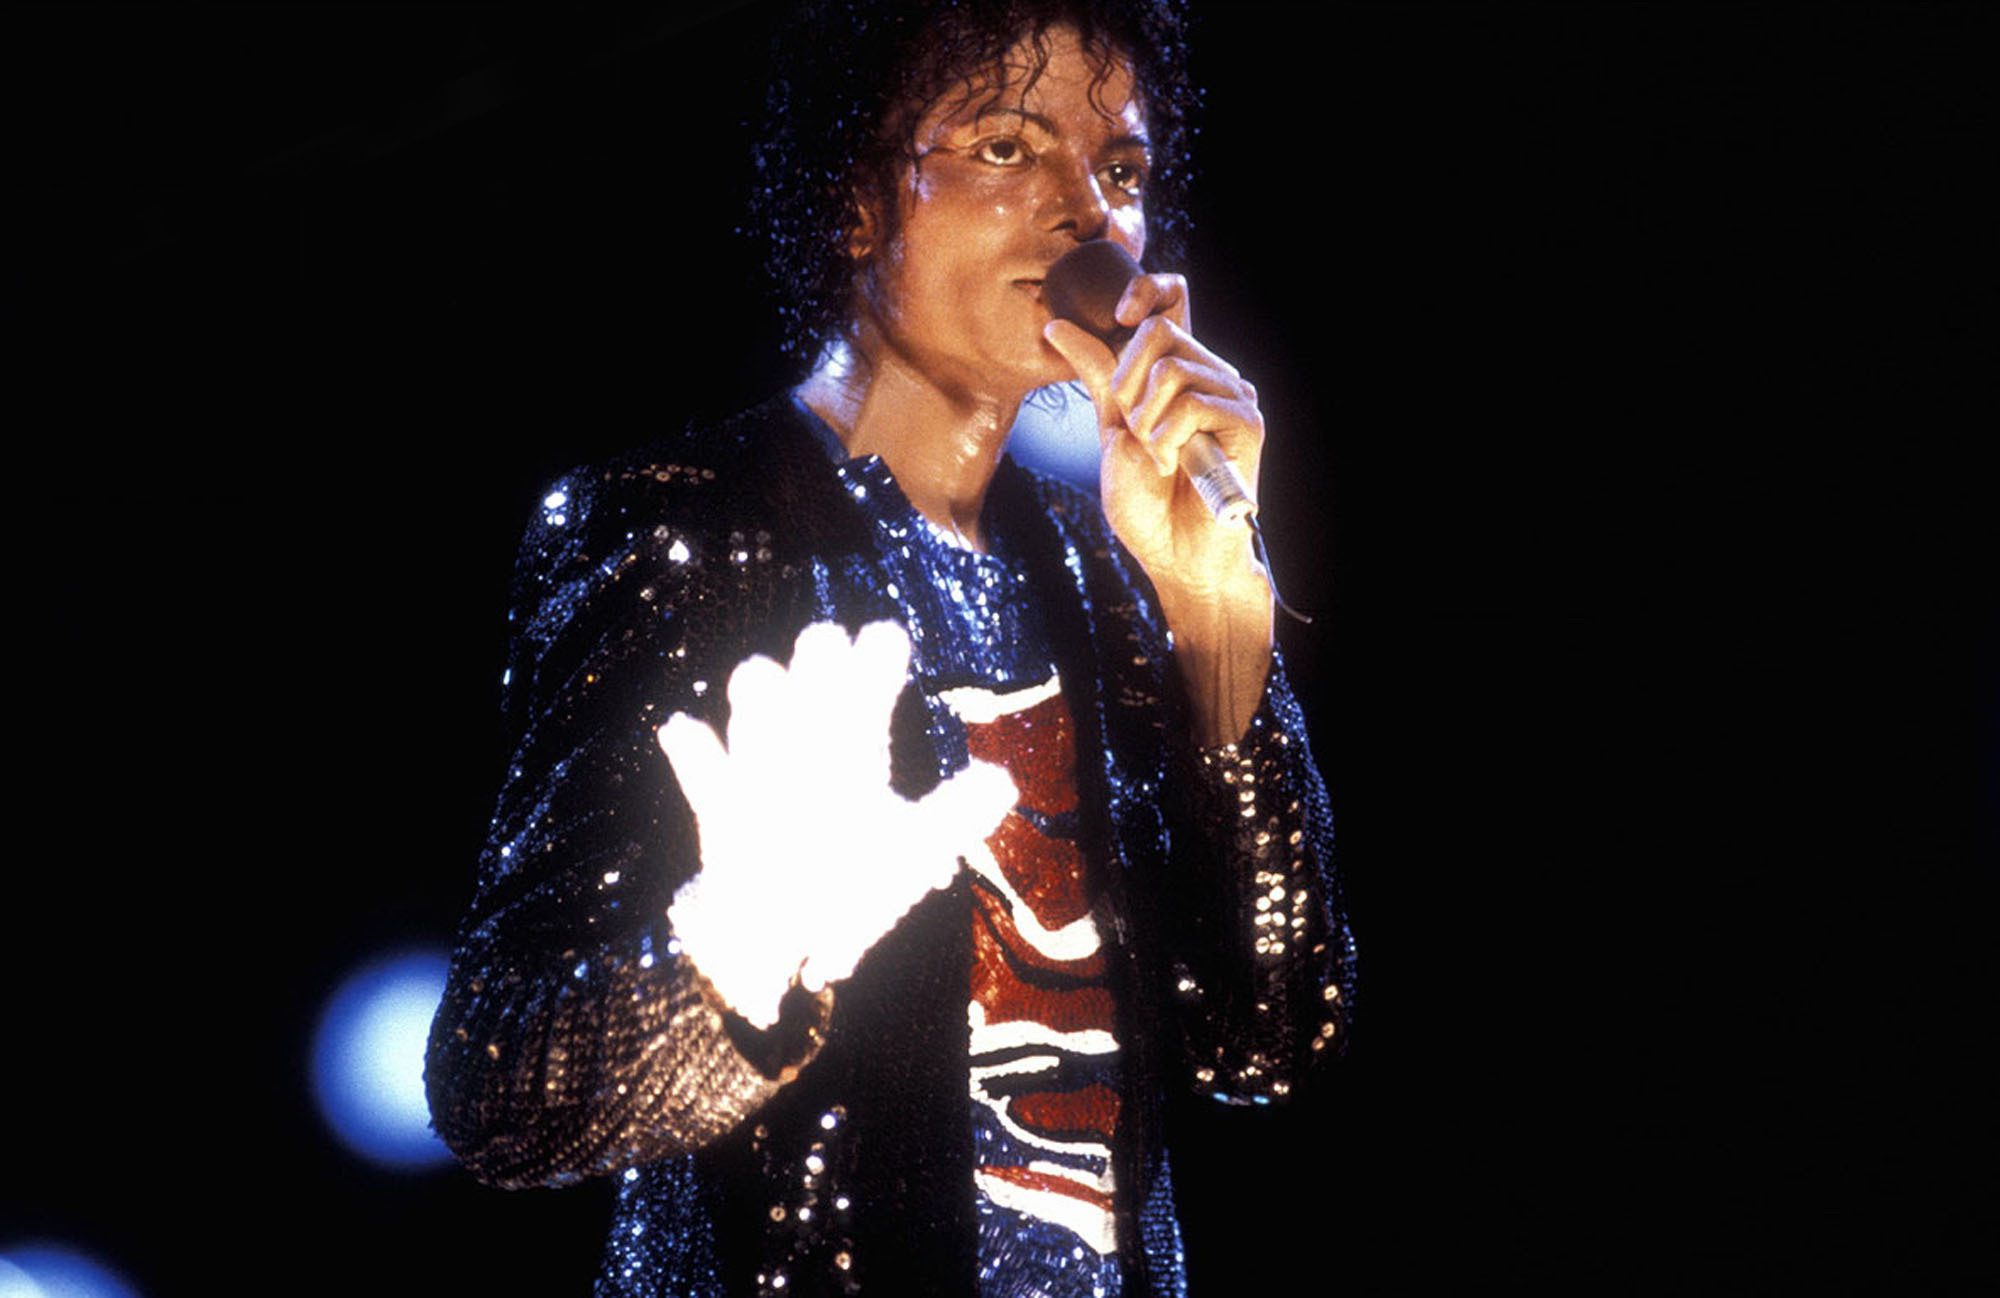 Victory-Tour-on-Stage-the-thriller-era-7